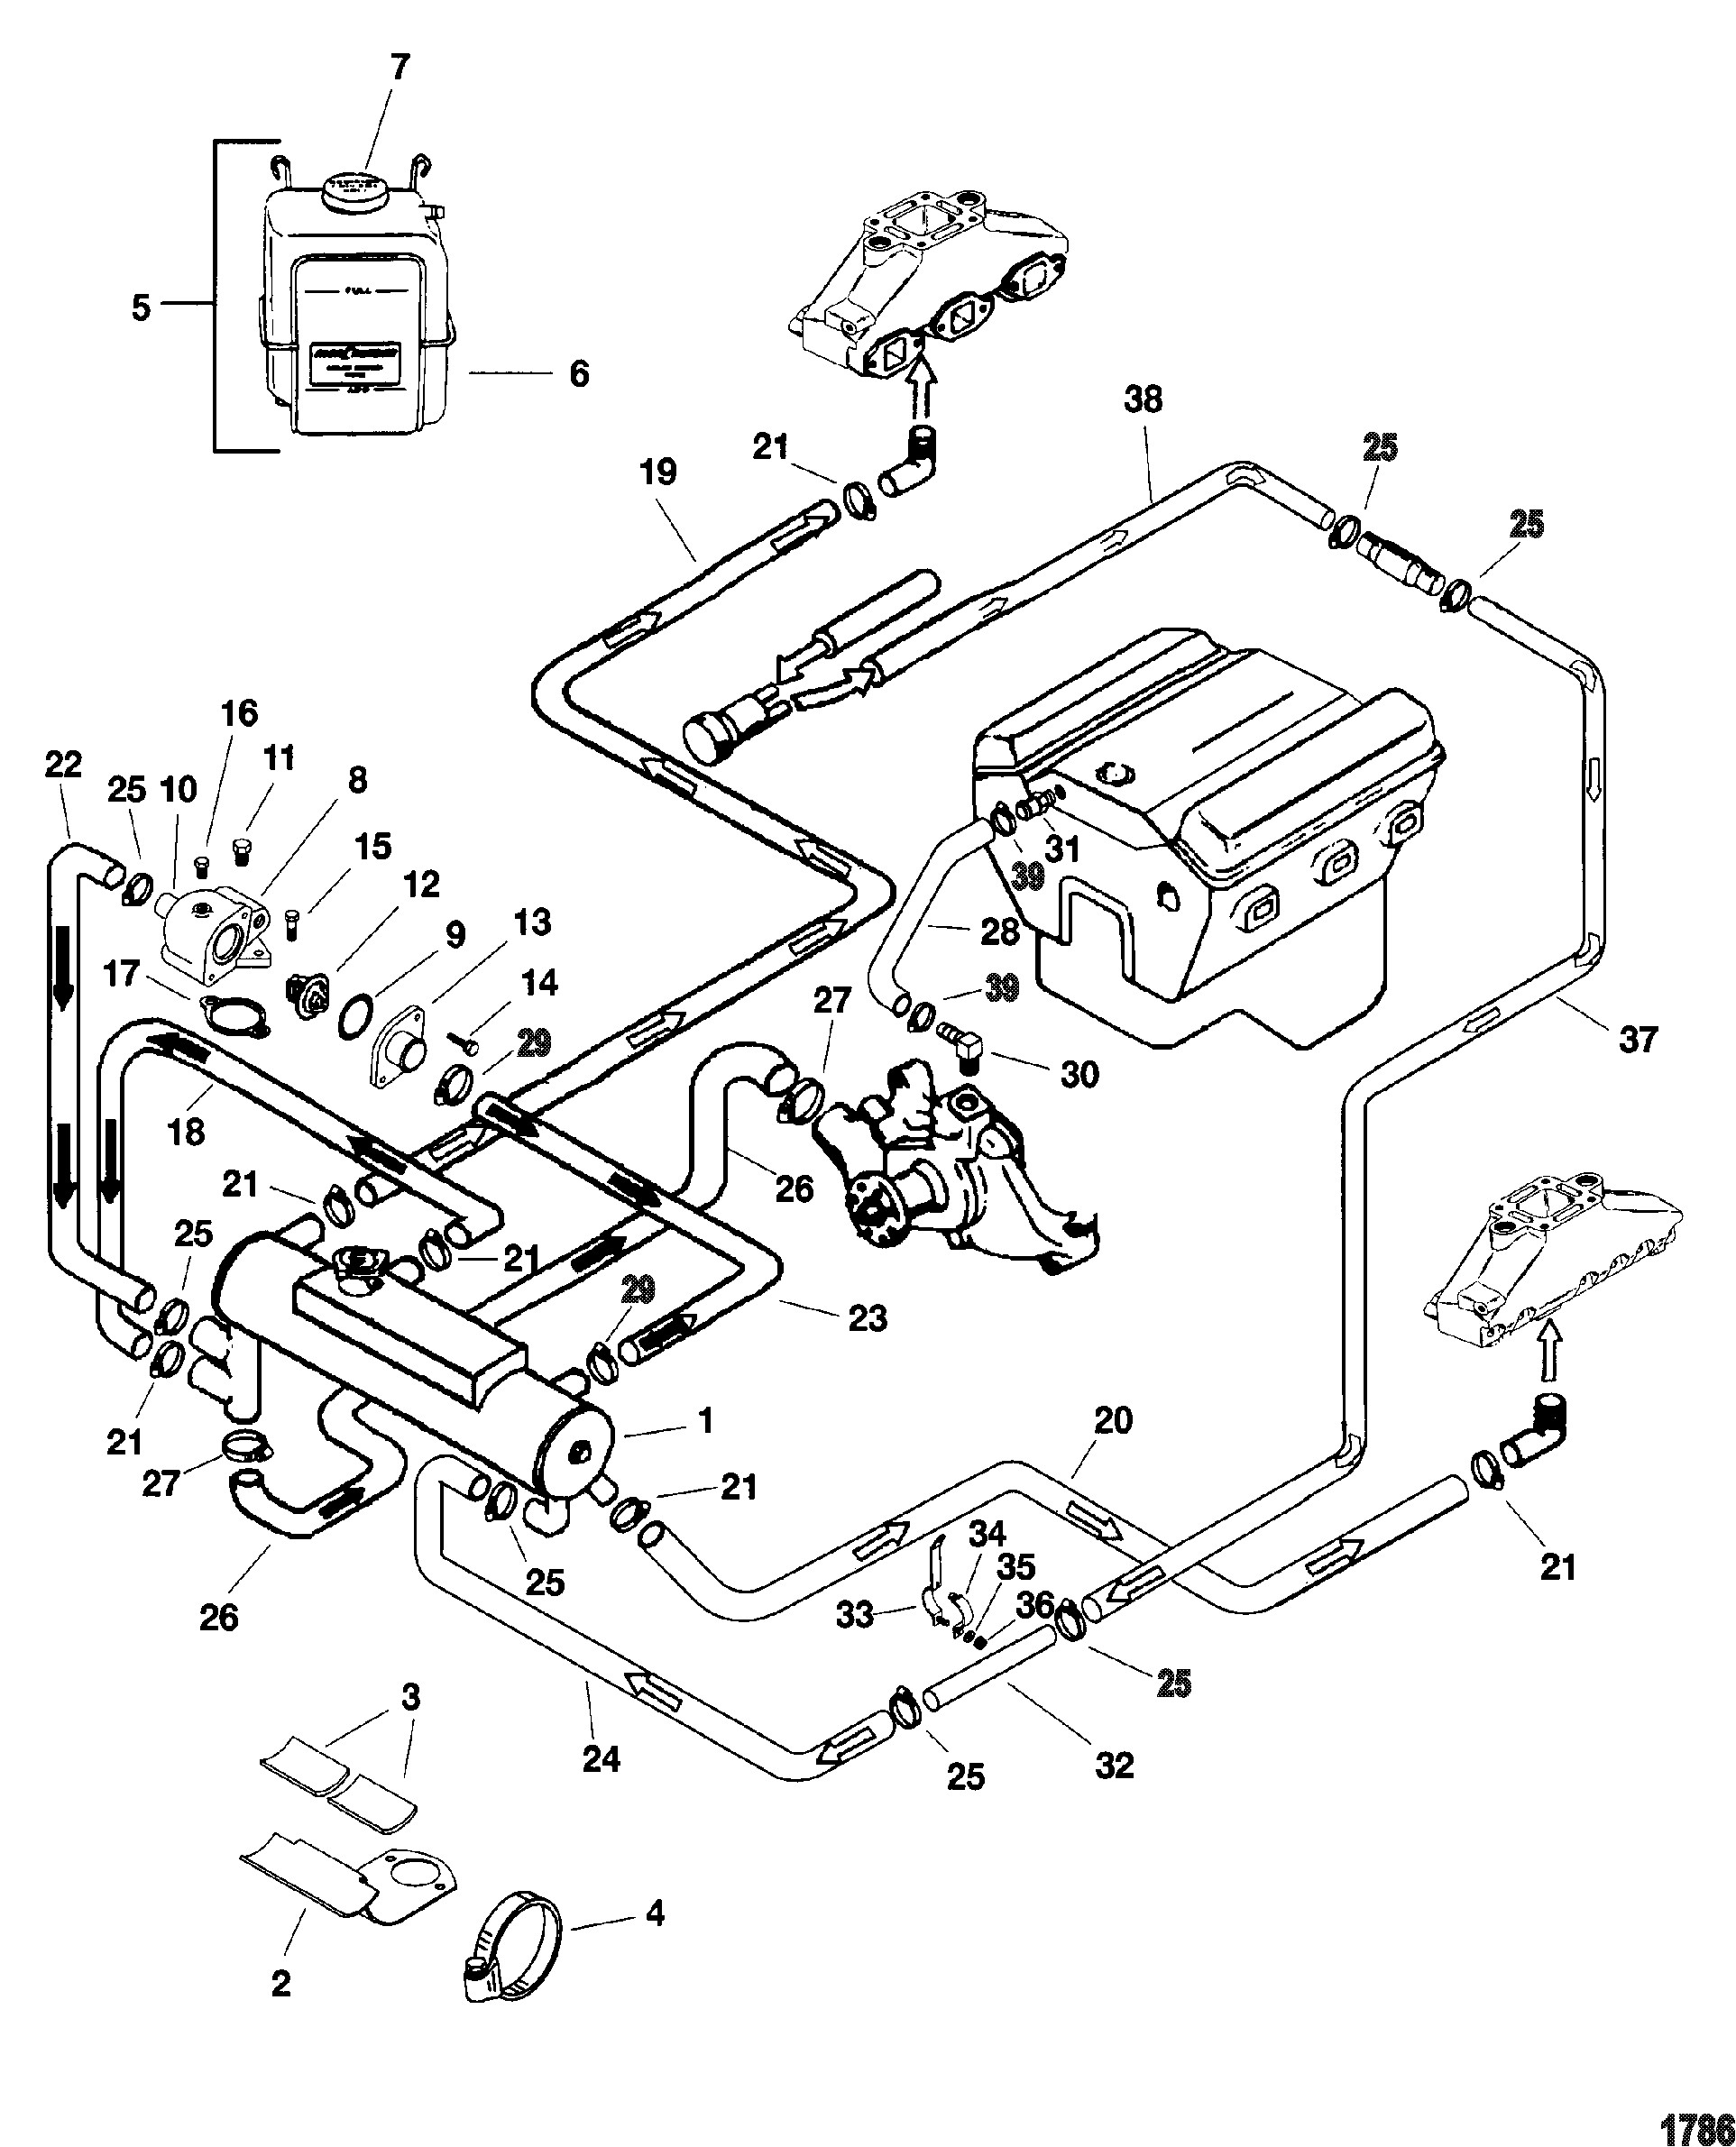 hight resolution of nissan 3 8 engine diagram wiring diagrams 2002 dodge caravan engine diagram 2006 chrysler 3 8 engine diagram